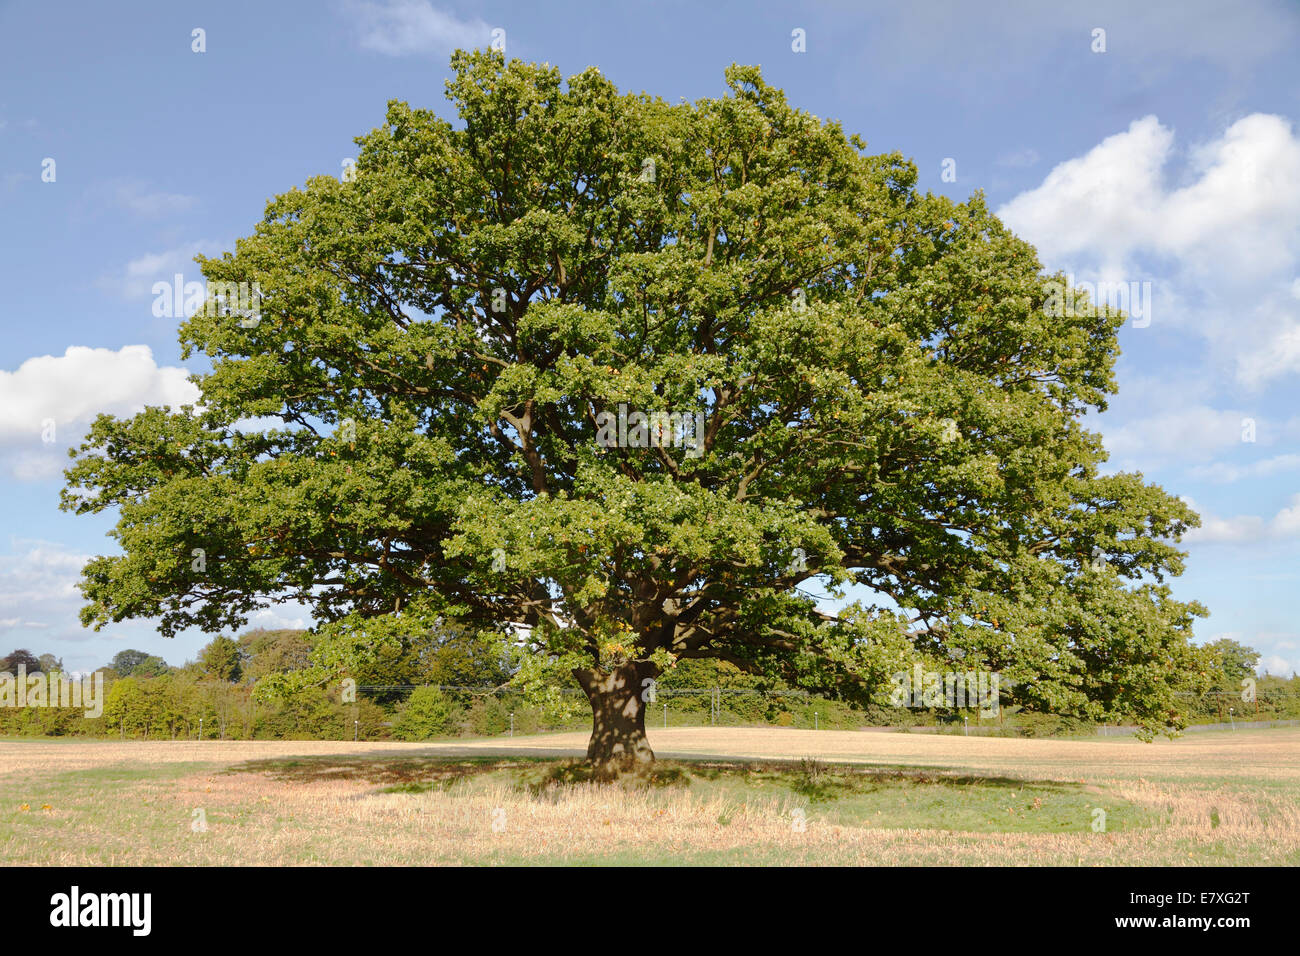 Big, old oak tree (common oak, English oak, Quercus robur) with green leaves on an early autumn blue sky. Stock Photo